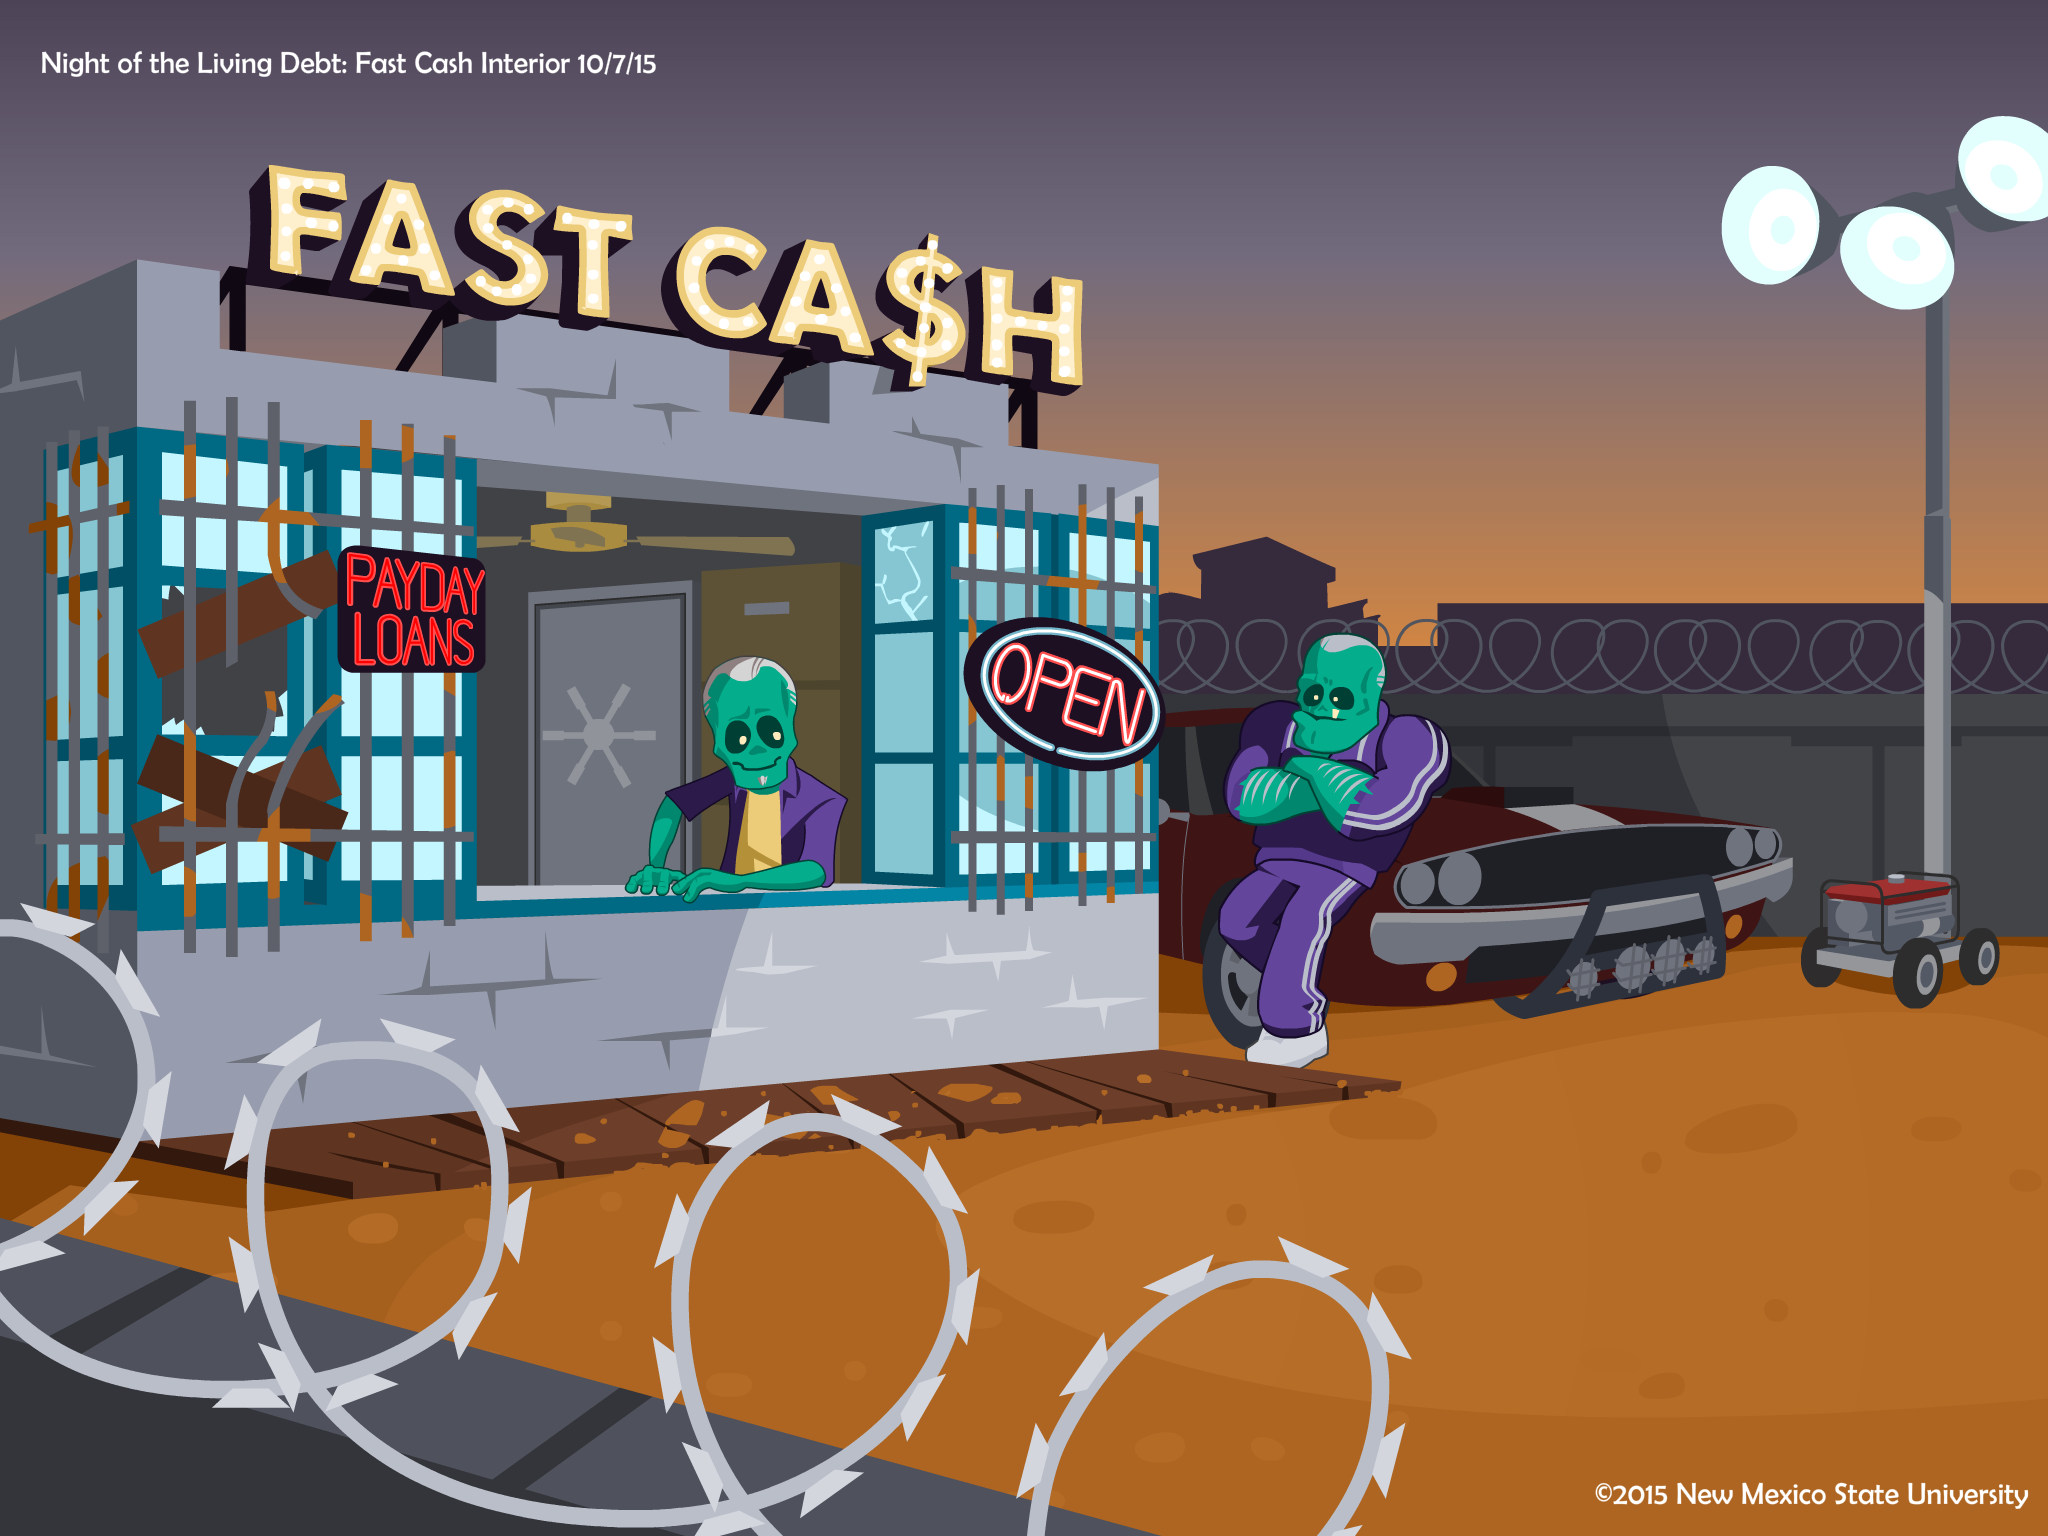 Night of the Living Debt video game fast cash building